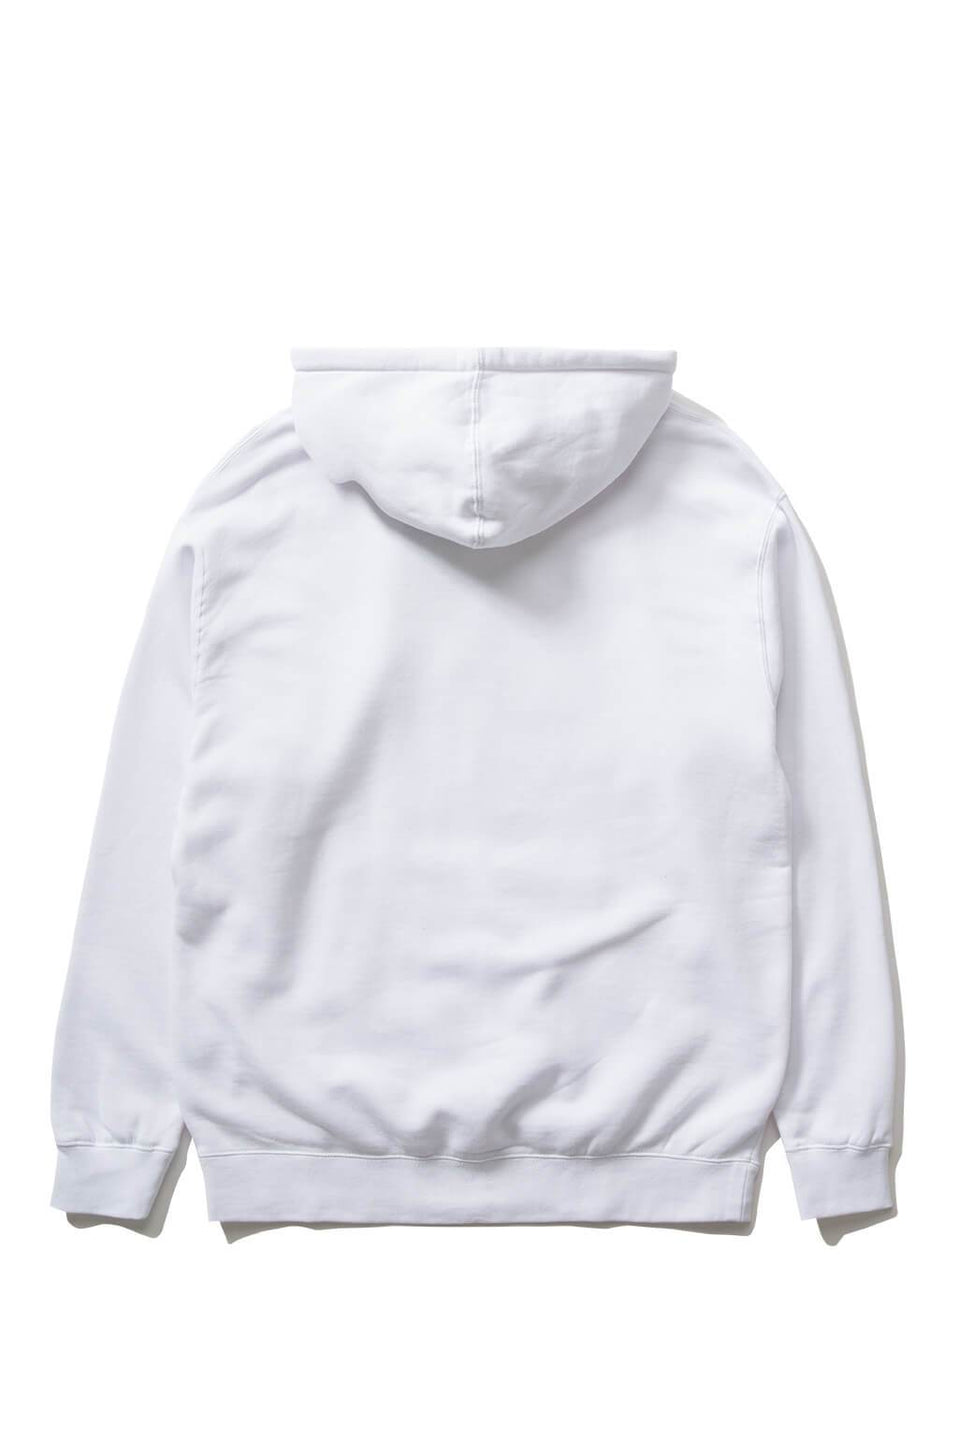 The Hundreds Forever Bar Pullover Hoodie White Back